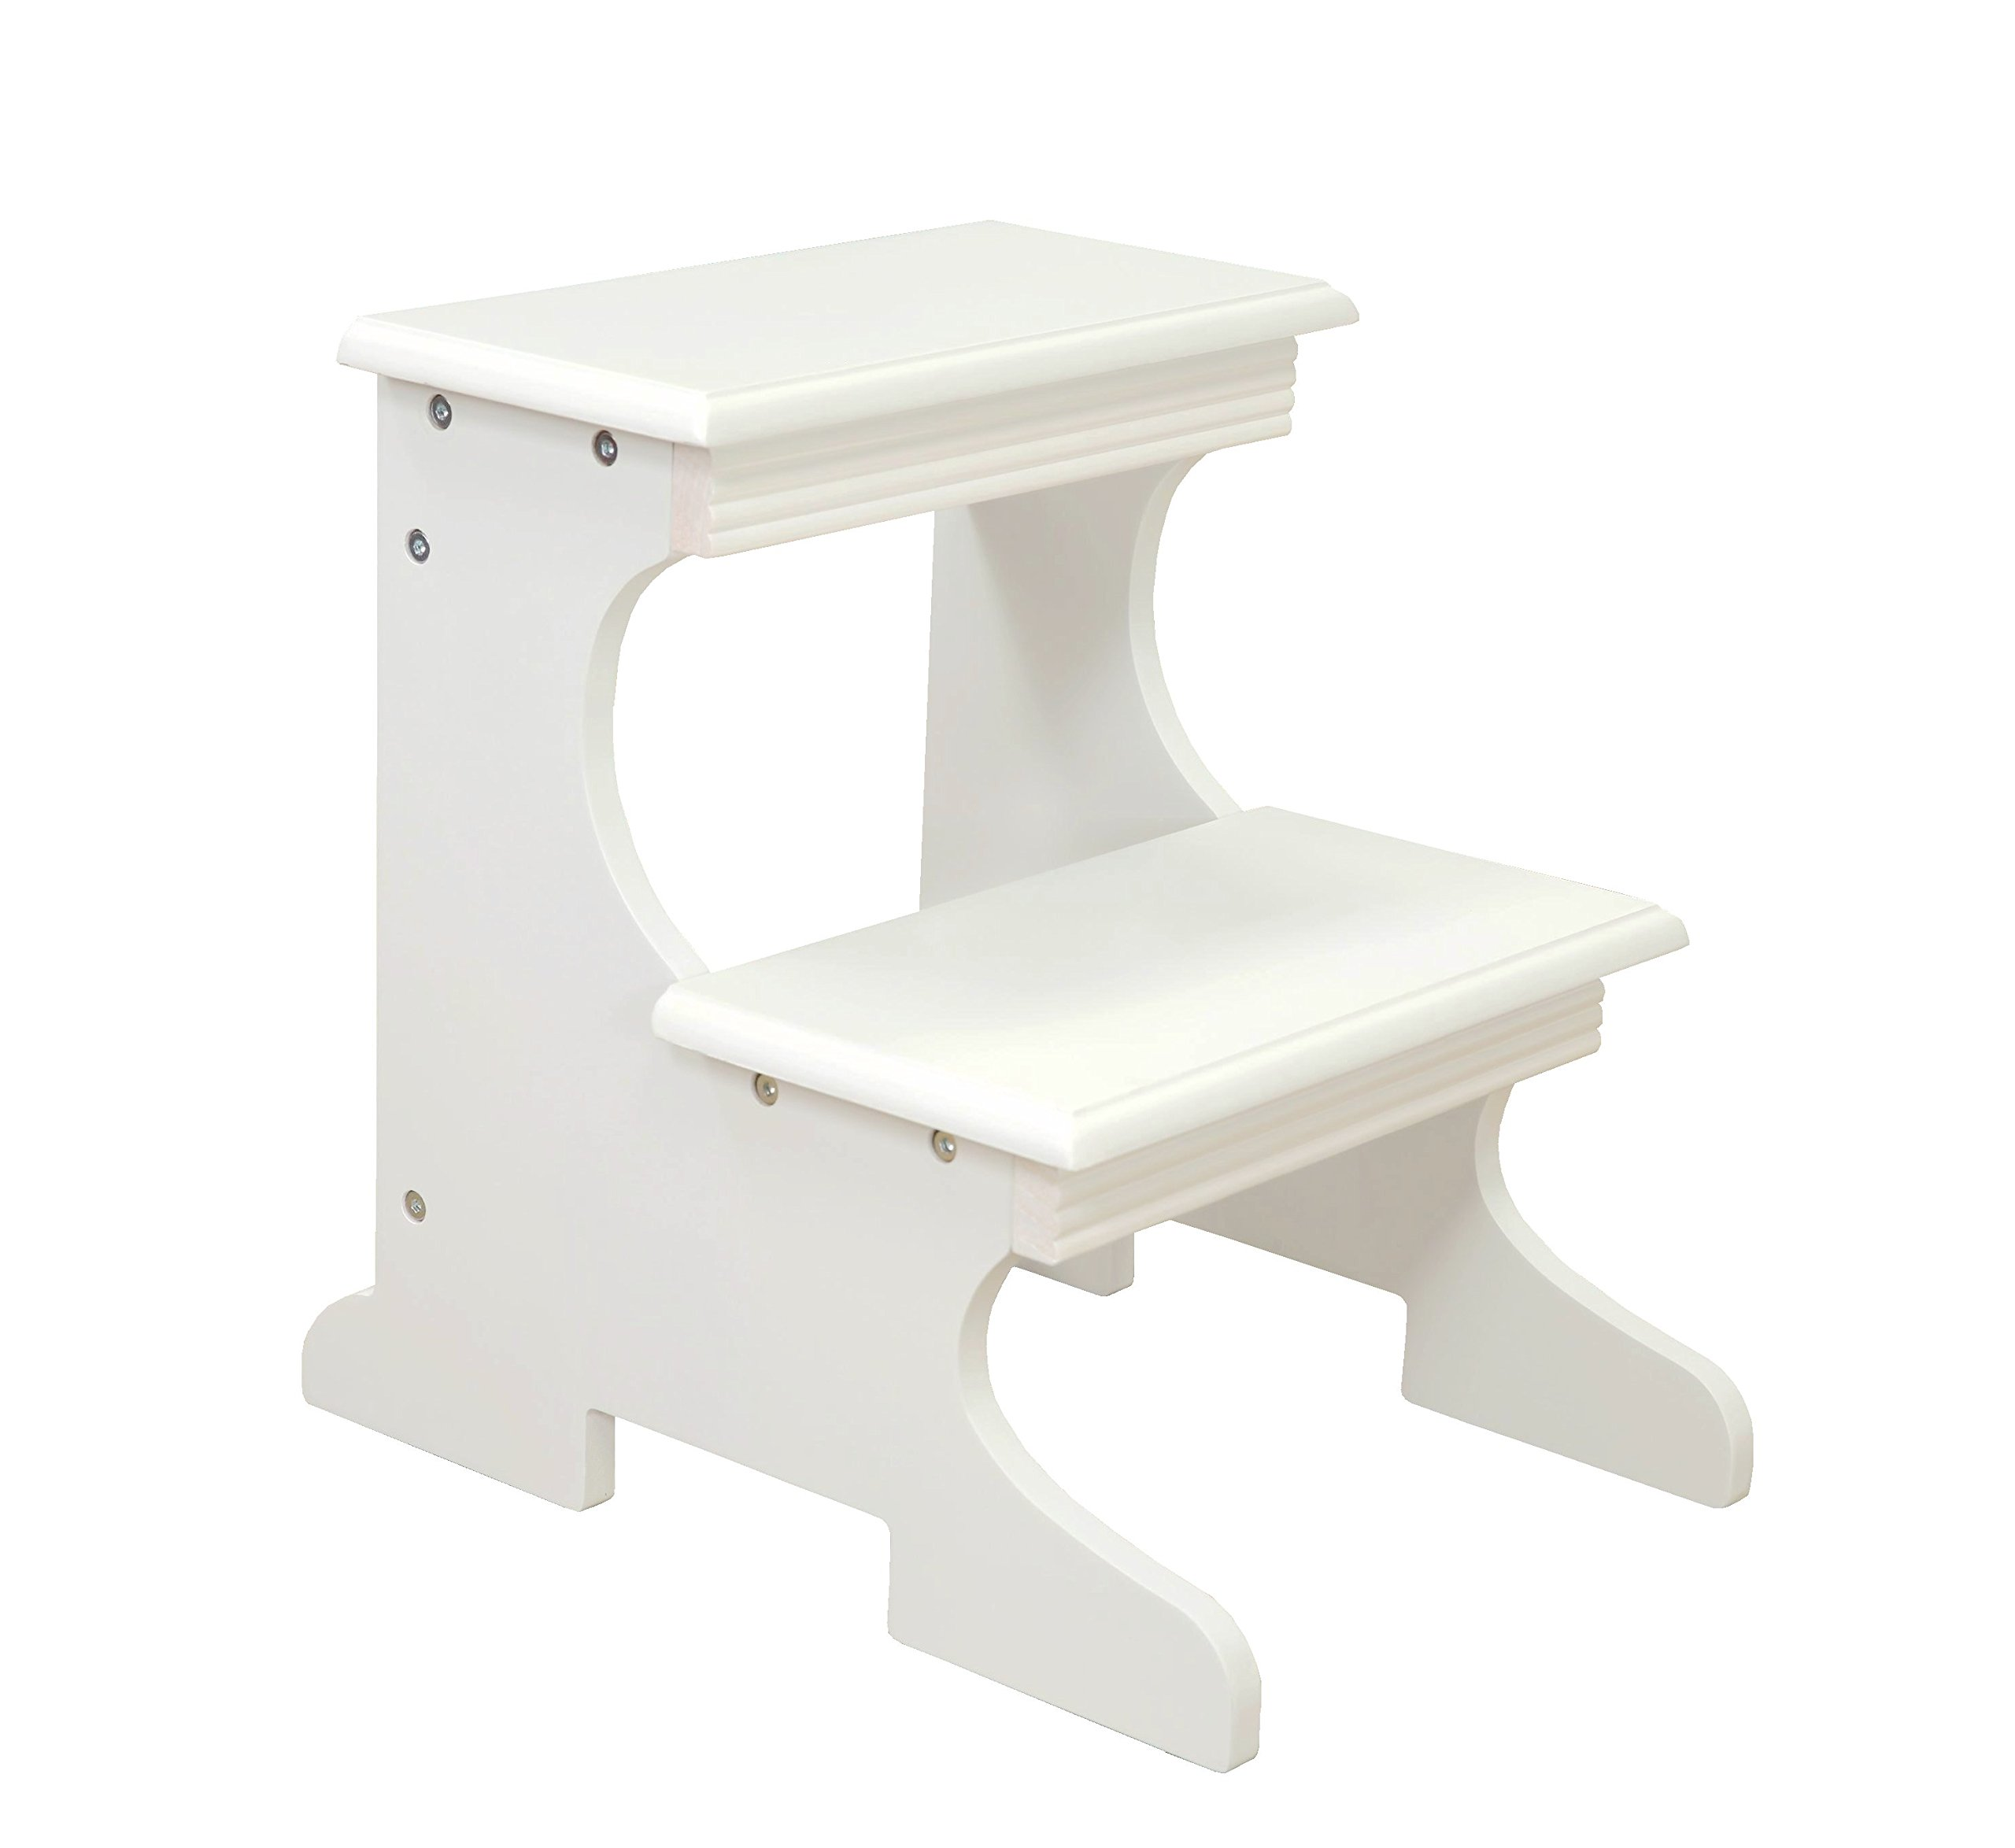 Frenchi Home Furnishing Step Stool, White by Frenchi Home Furnishing